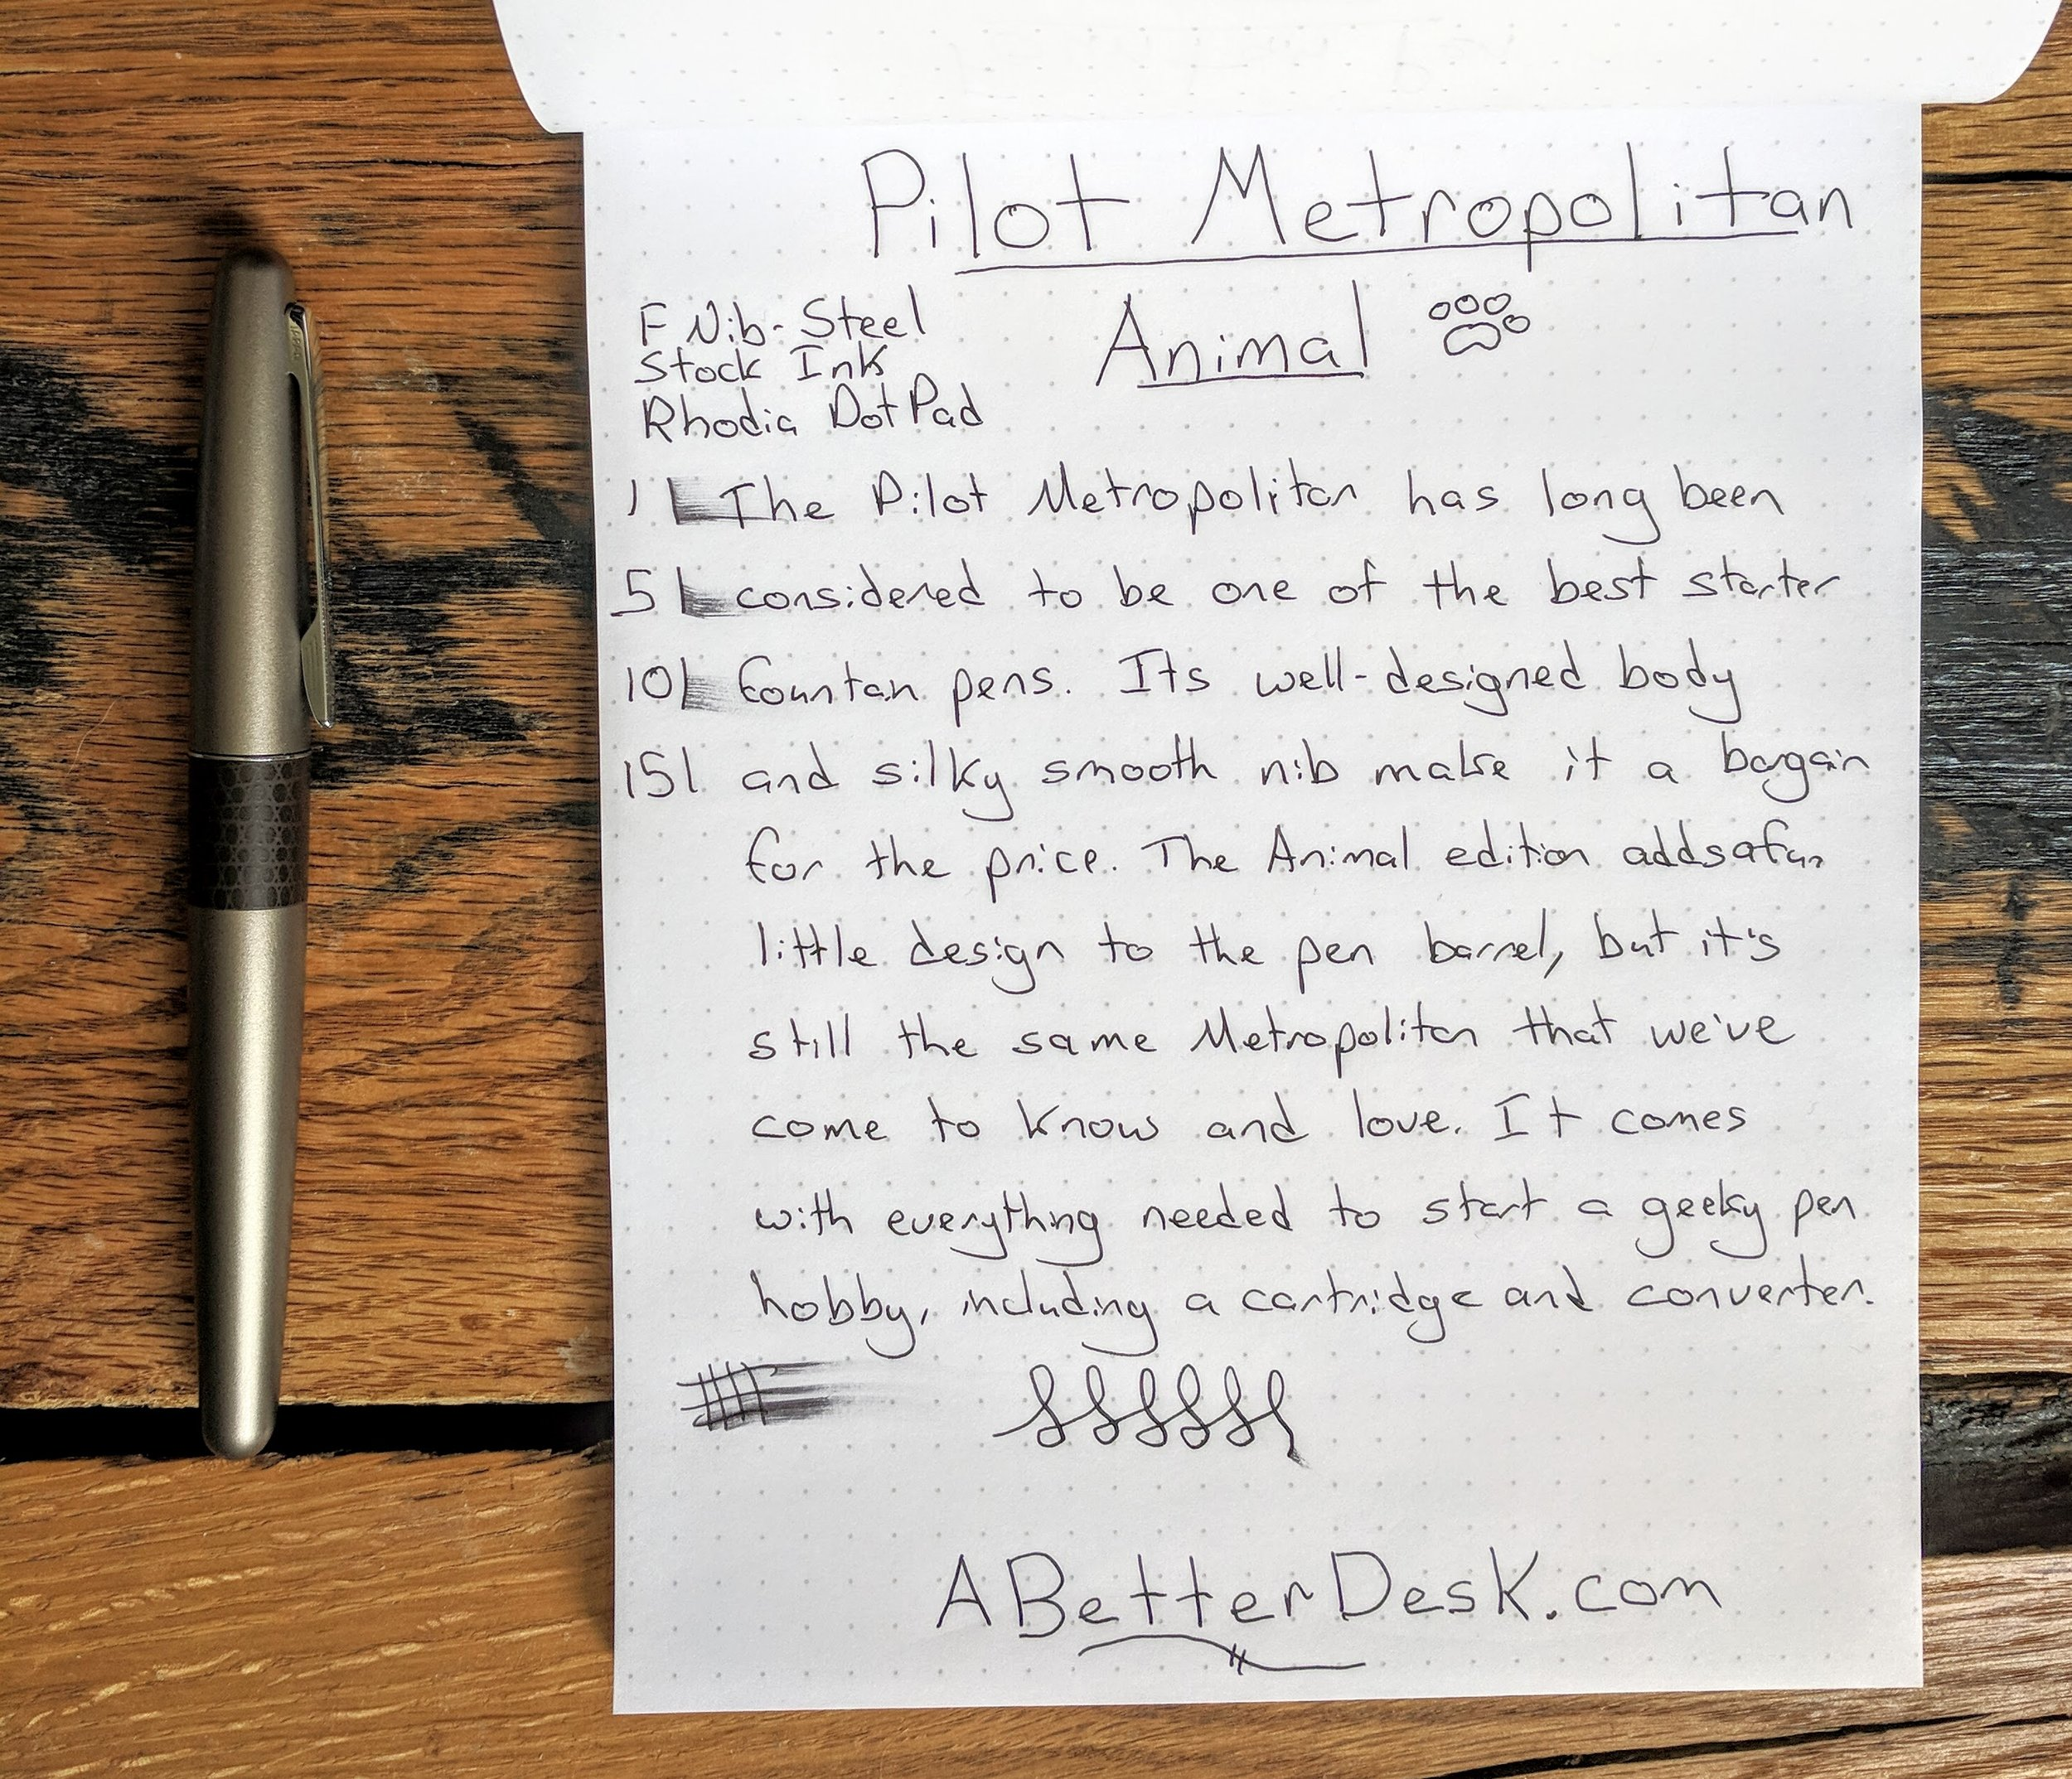 Pilot Metropolitan Animal Fountain Pen Review Handwritten.jpg